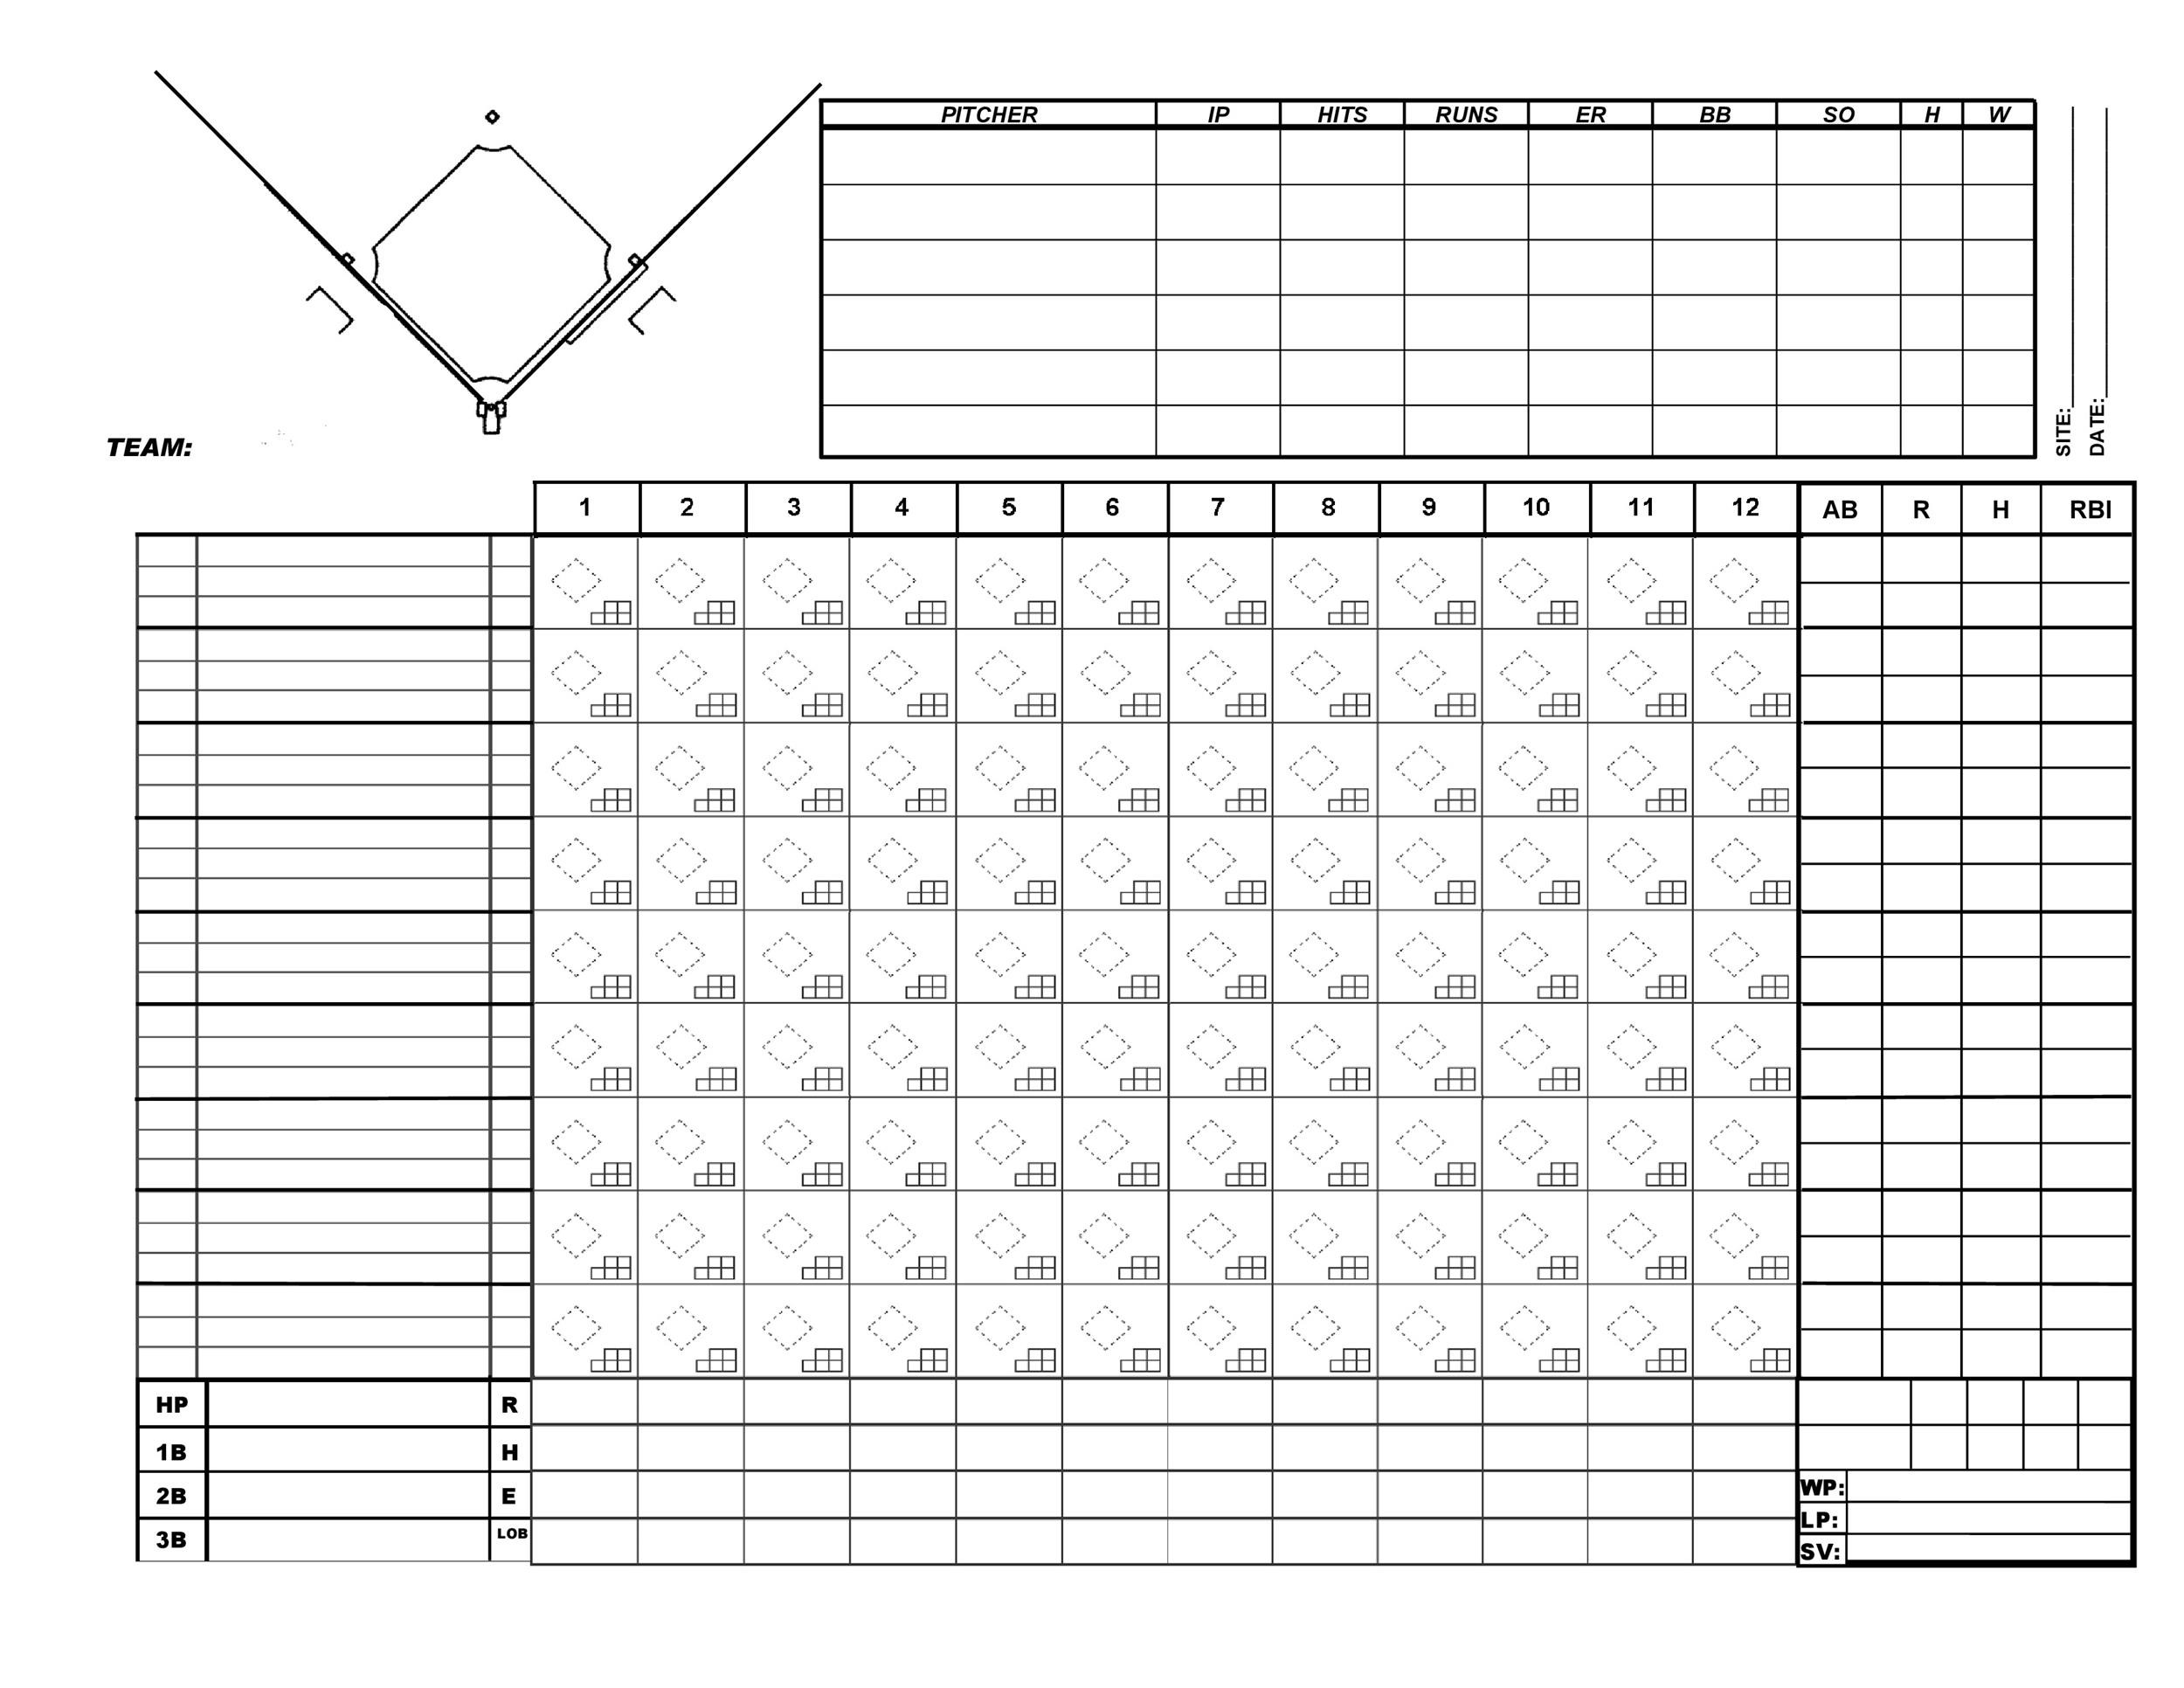 It is an image of Monster Printable Baseball Score Sheet